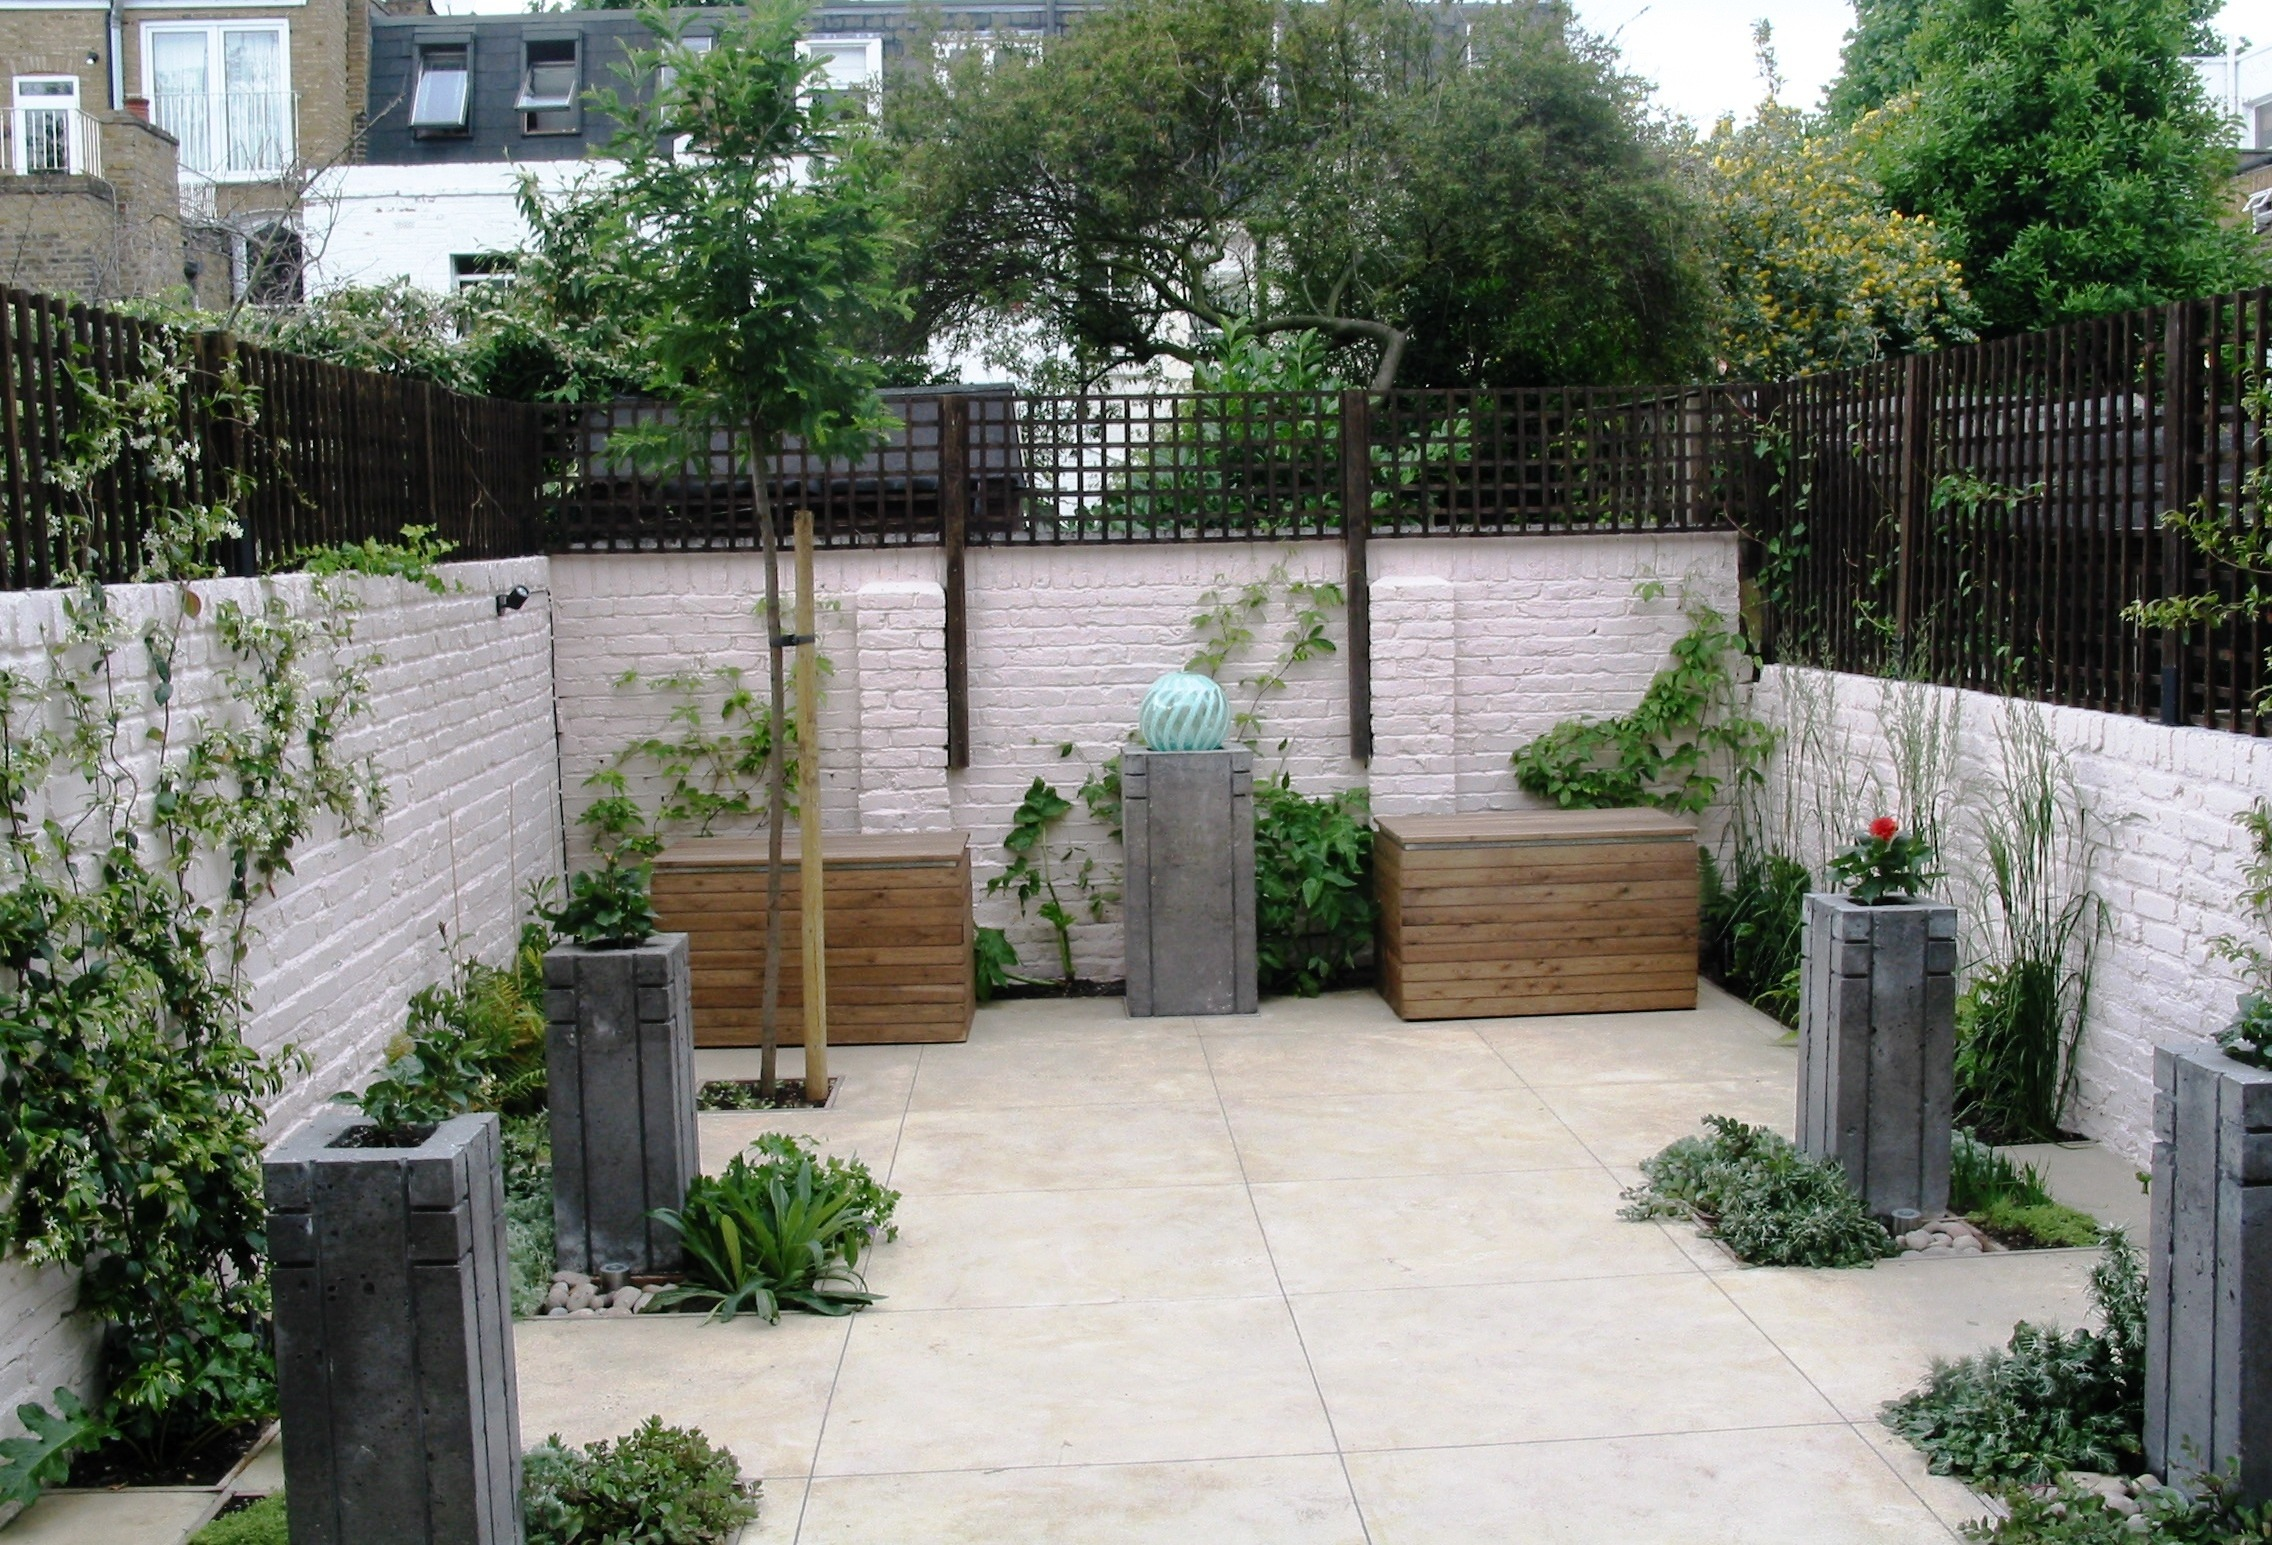 Garden With Concrete Planters, Water Feature And Polished Concrete Floor